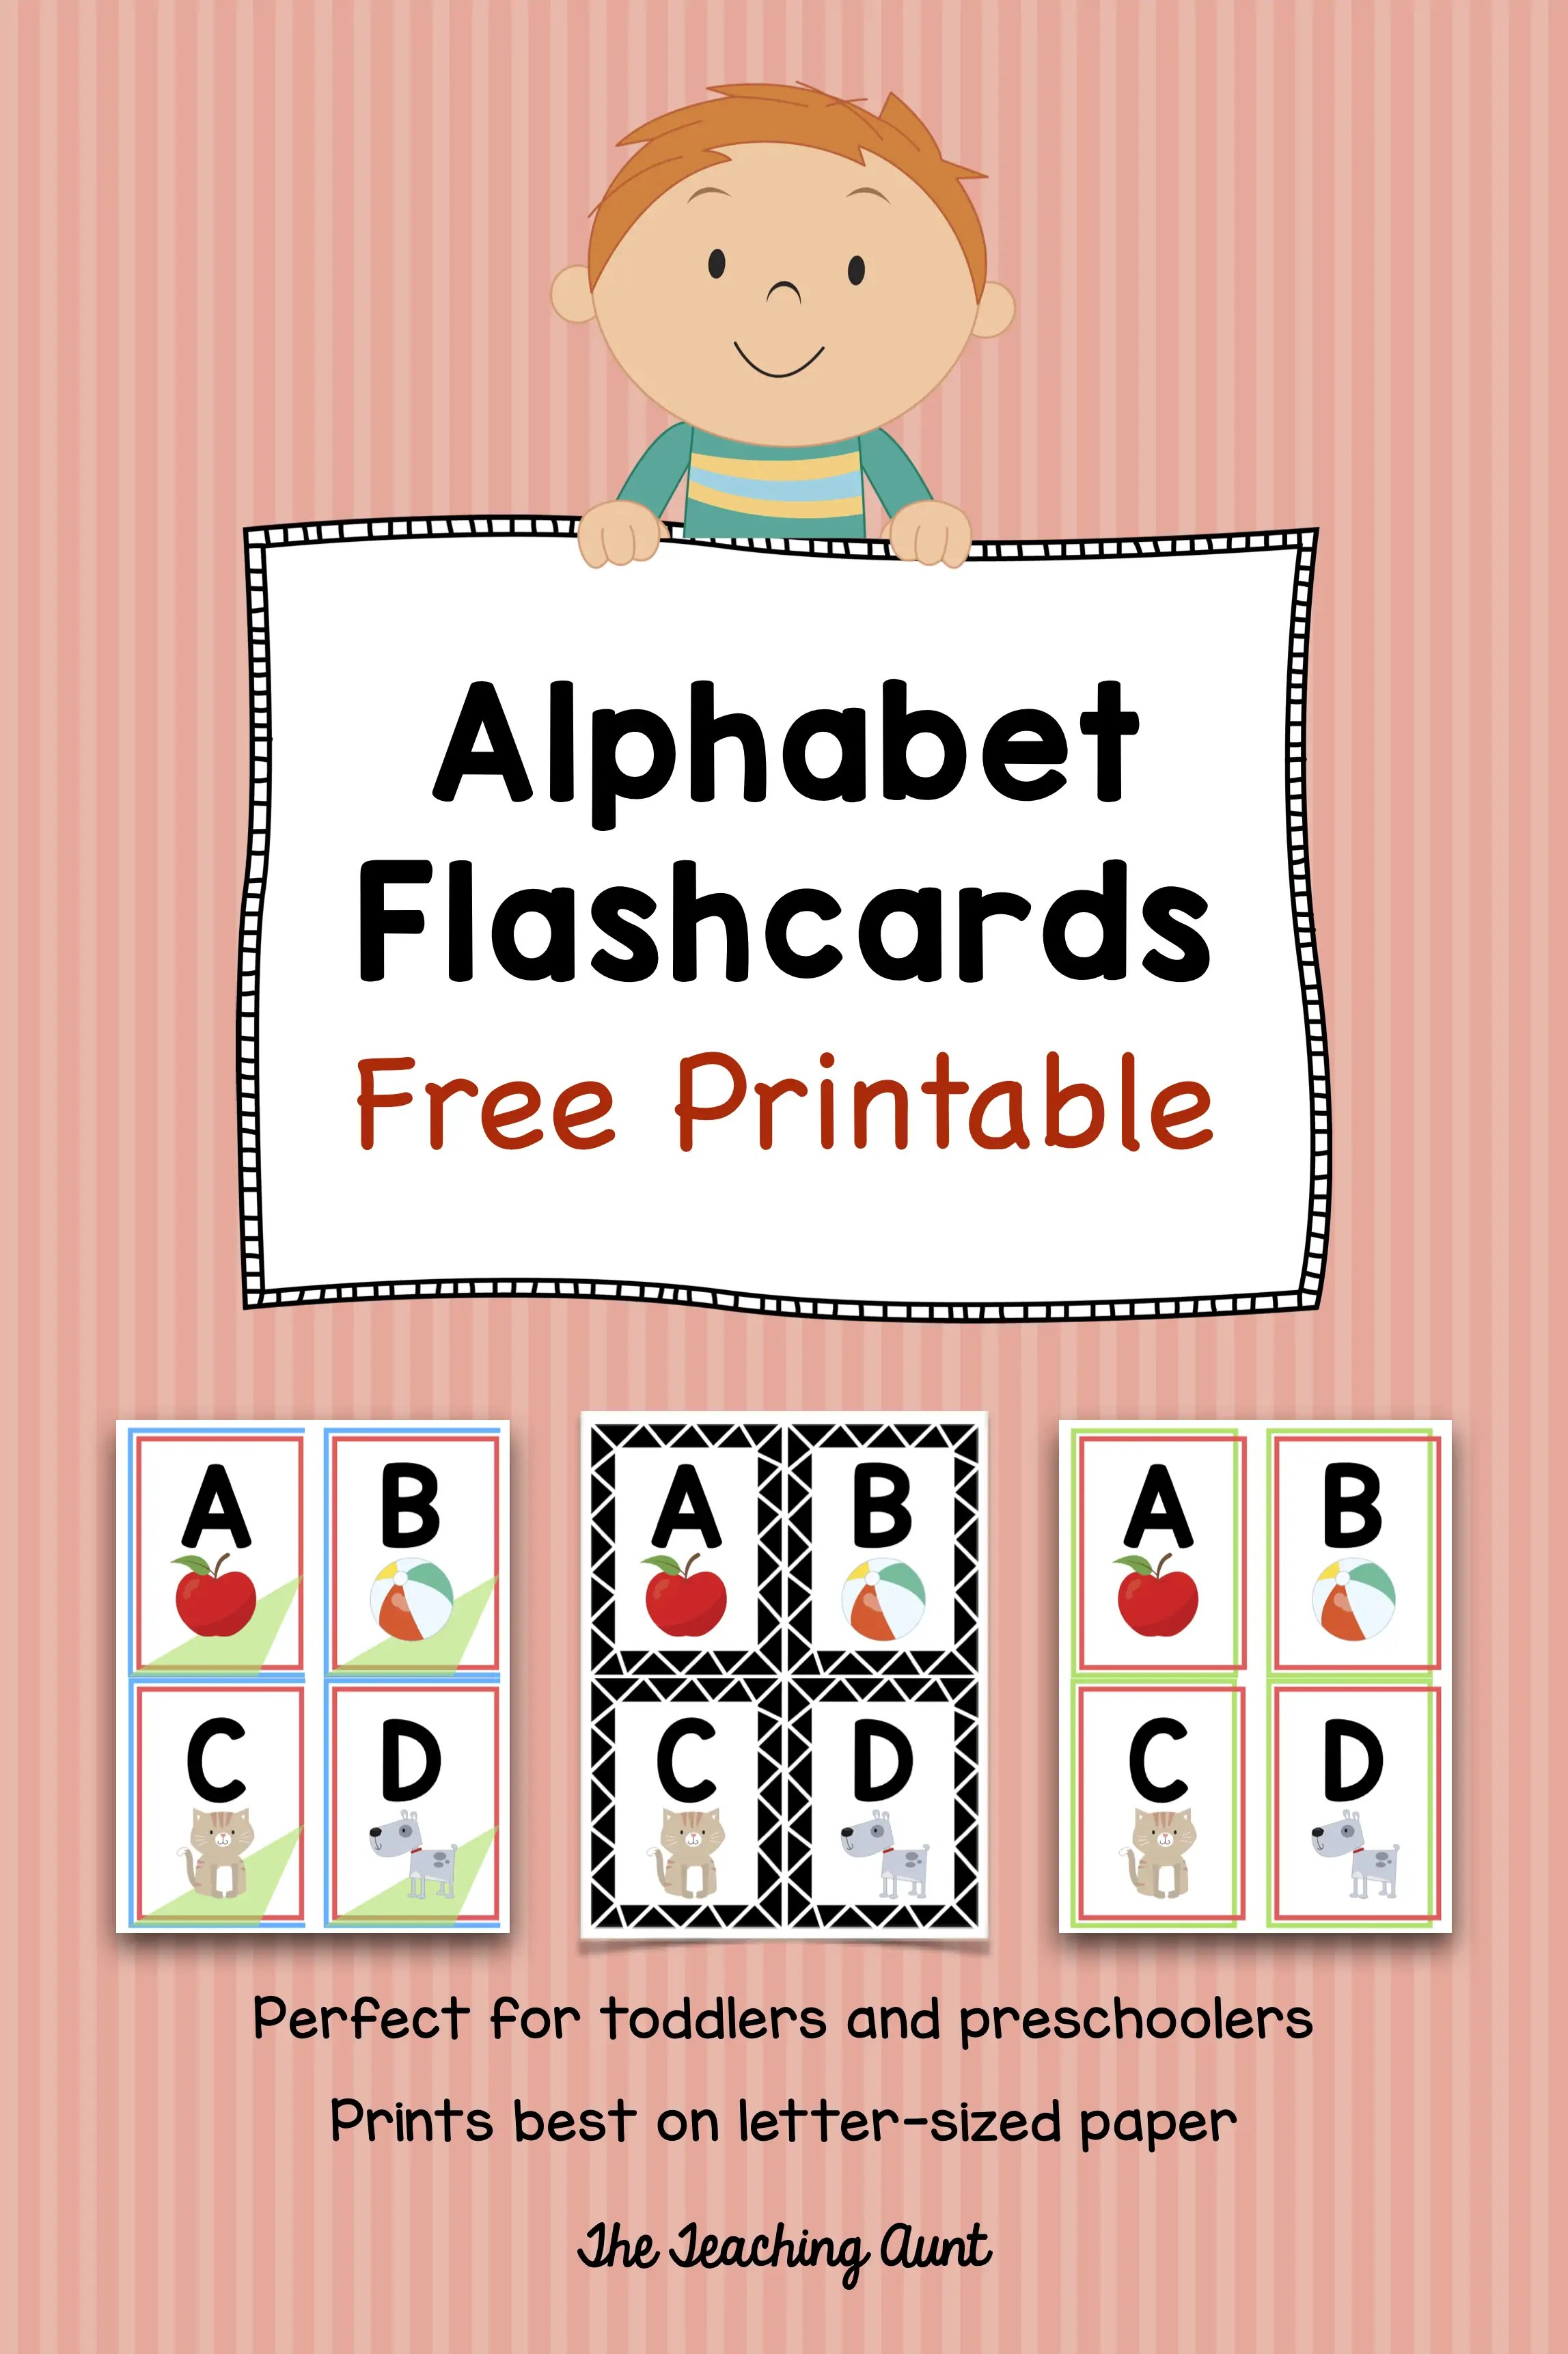 graphic regarding Free Printable Abc Flashcards referred to as Alphabet Flashcards Cost-free Printable - The Training Aunt